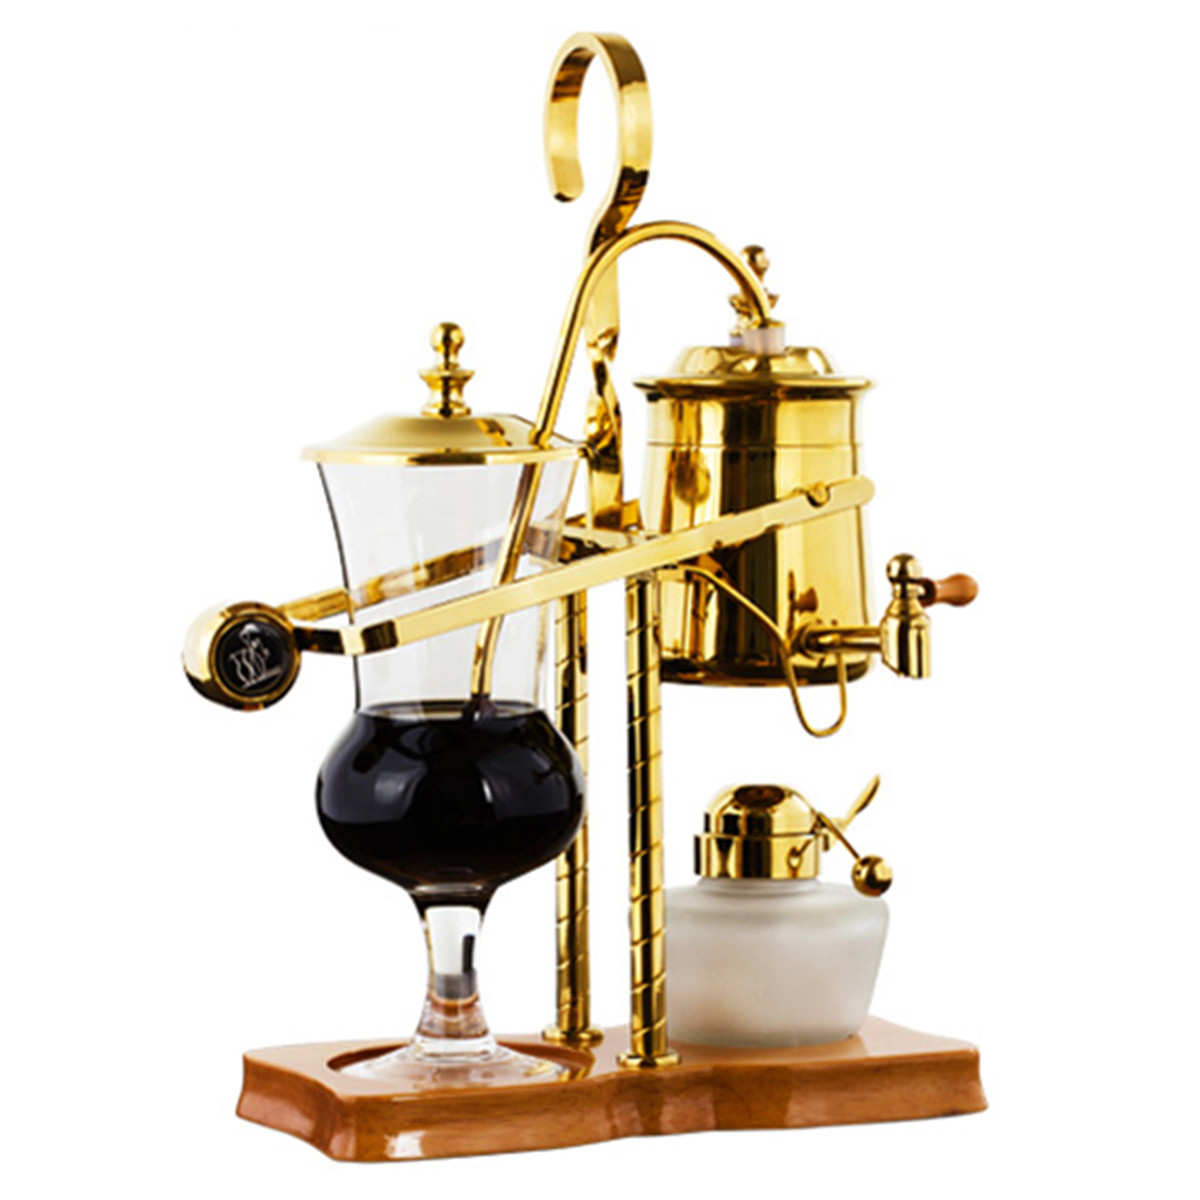 Siphon Coffee Maker Nz : CHRISTMAS Gift Coffee Maker Tea Pot Belgium Balance Syphon Dutch Cold Dripper - AUD 18.39 ...